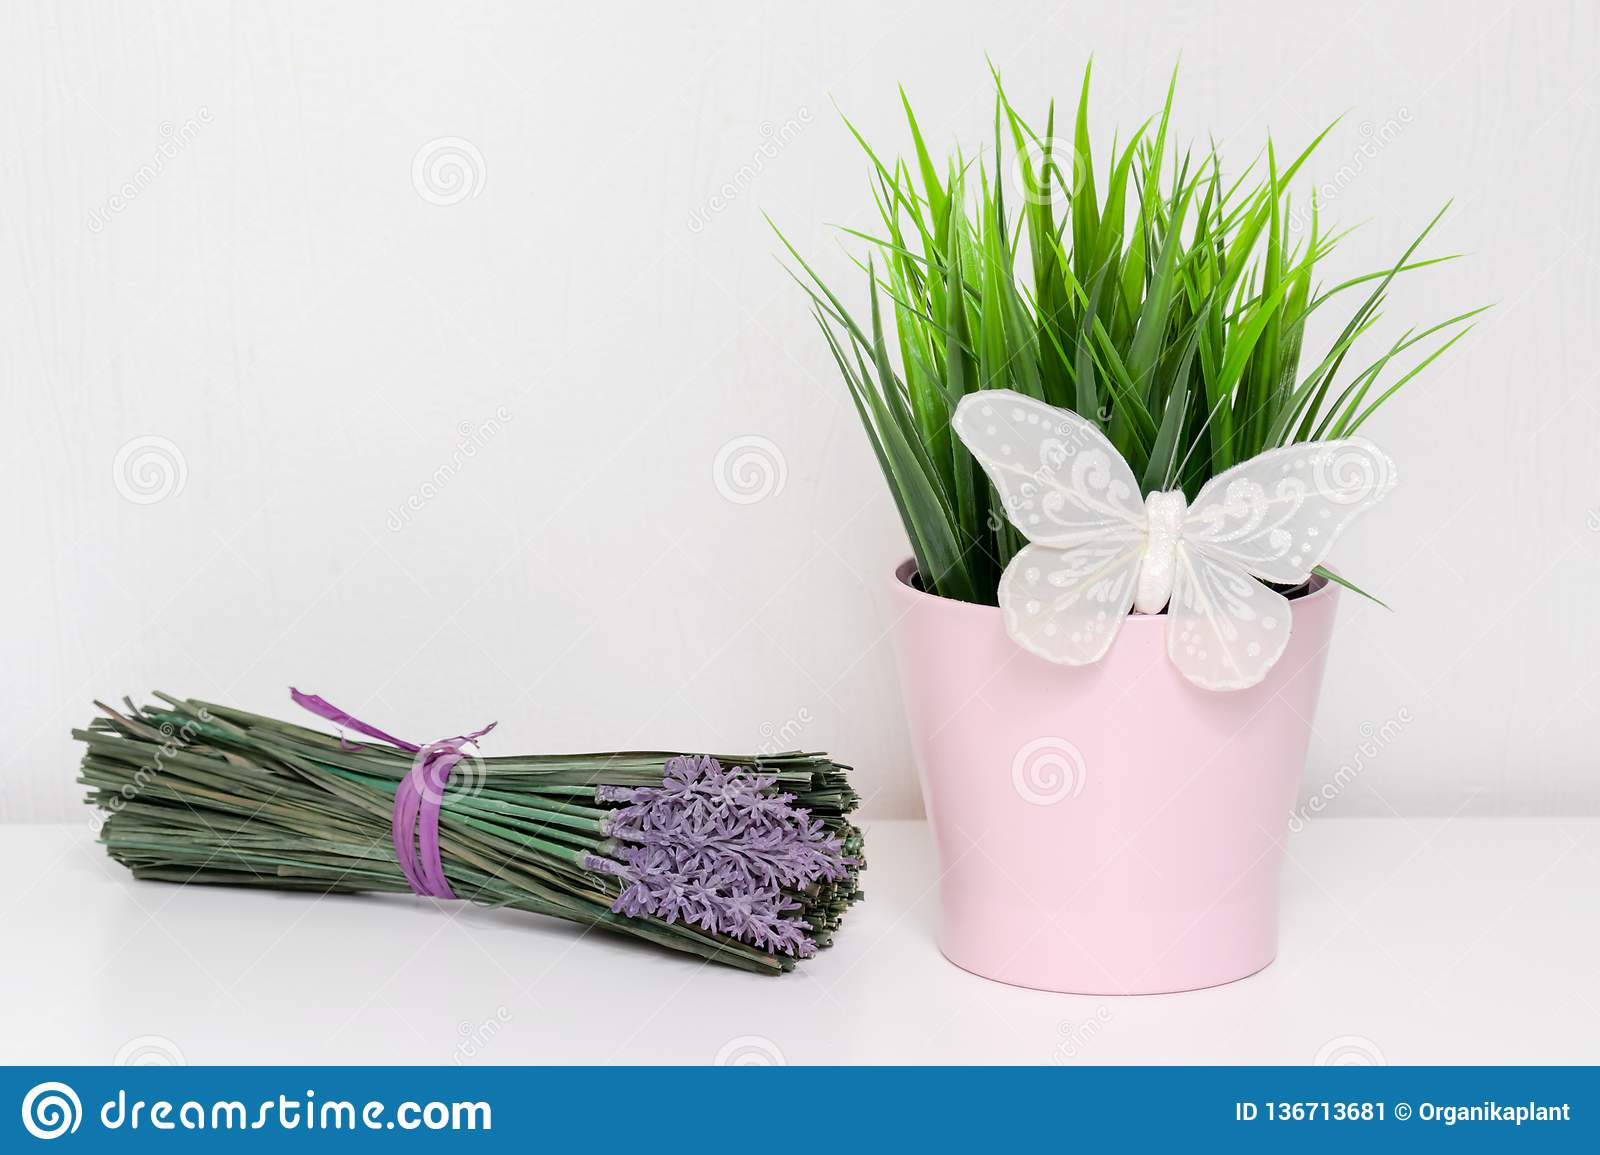 Spring green plant in pink pot with white decorative butterfly and a bunch of lavender flowers on white background with copy space